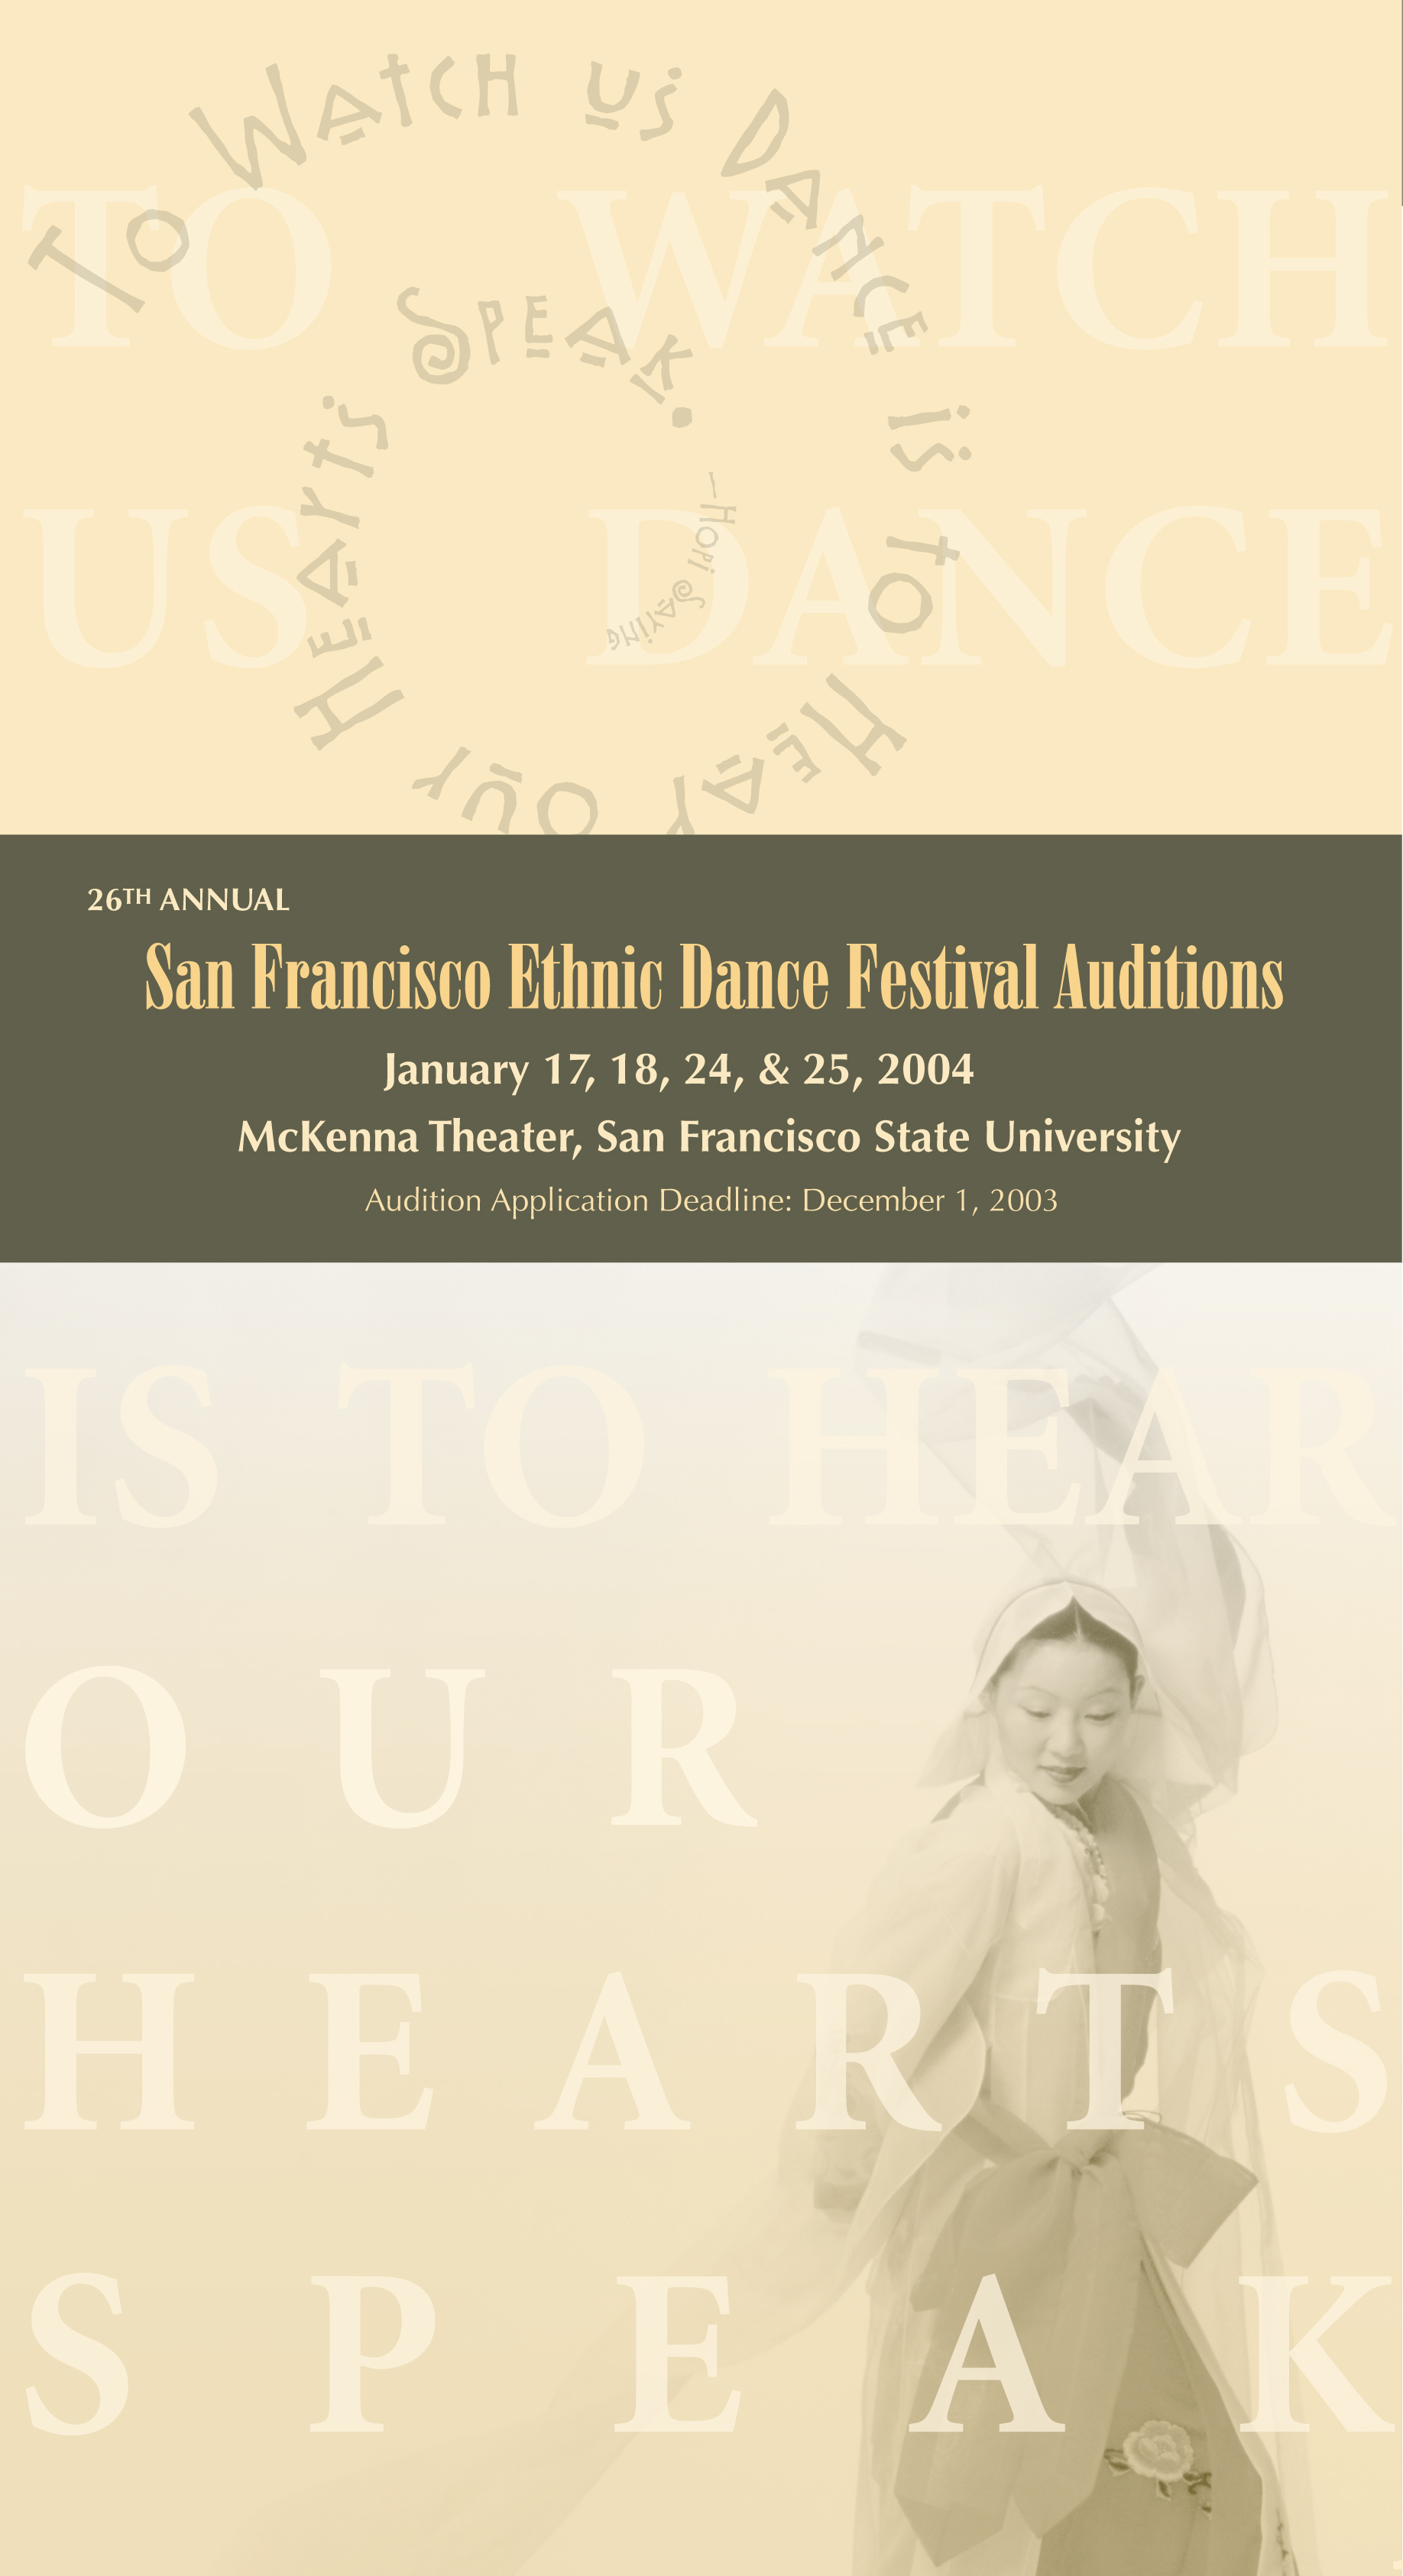 World Arts West, SF Ethnic Dance Festival Audition Application